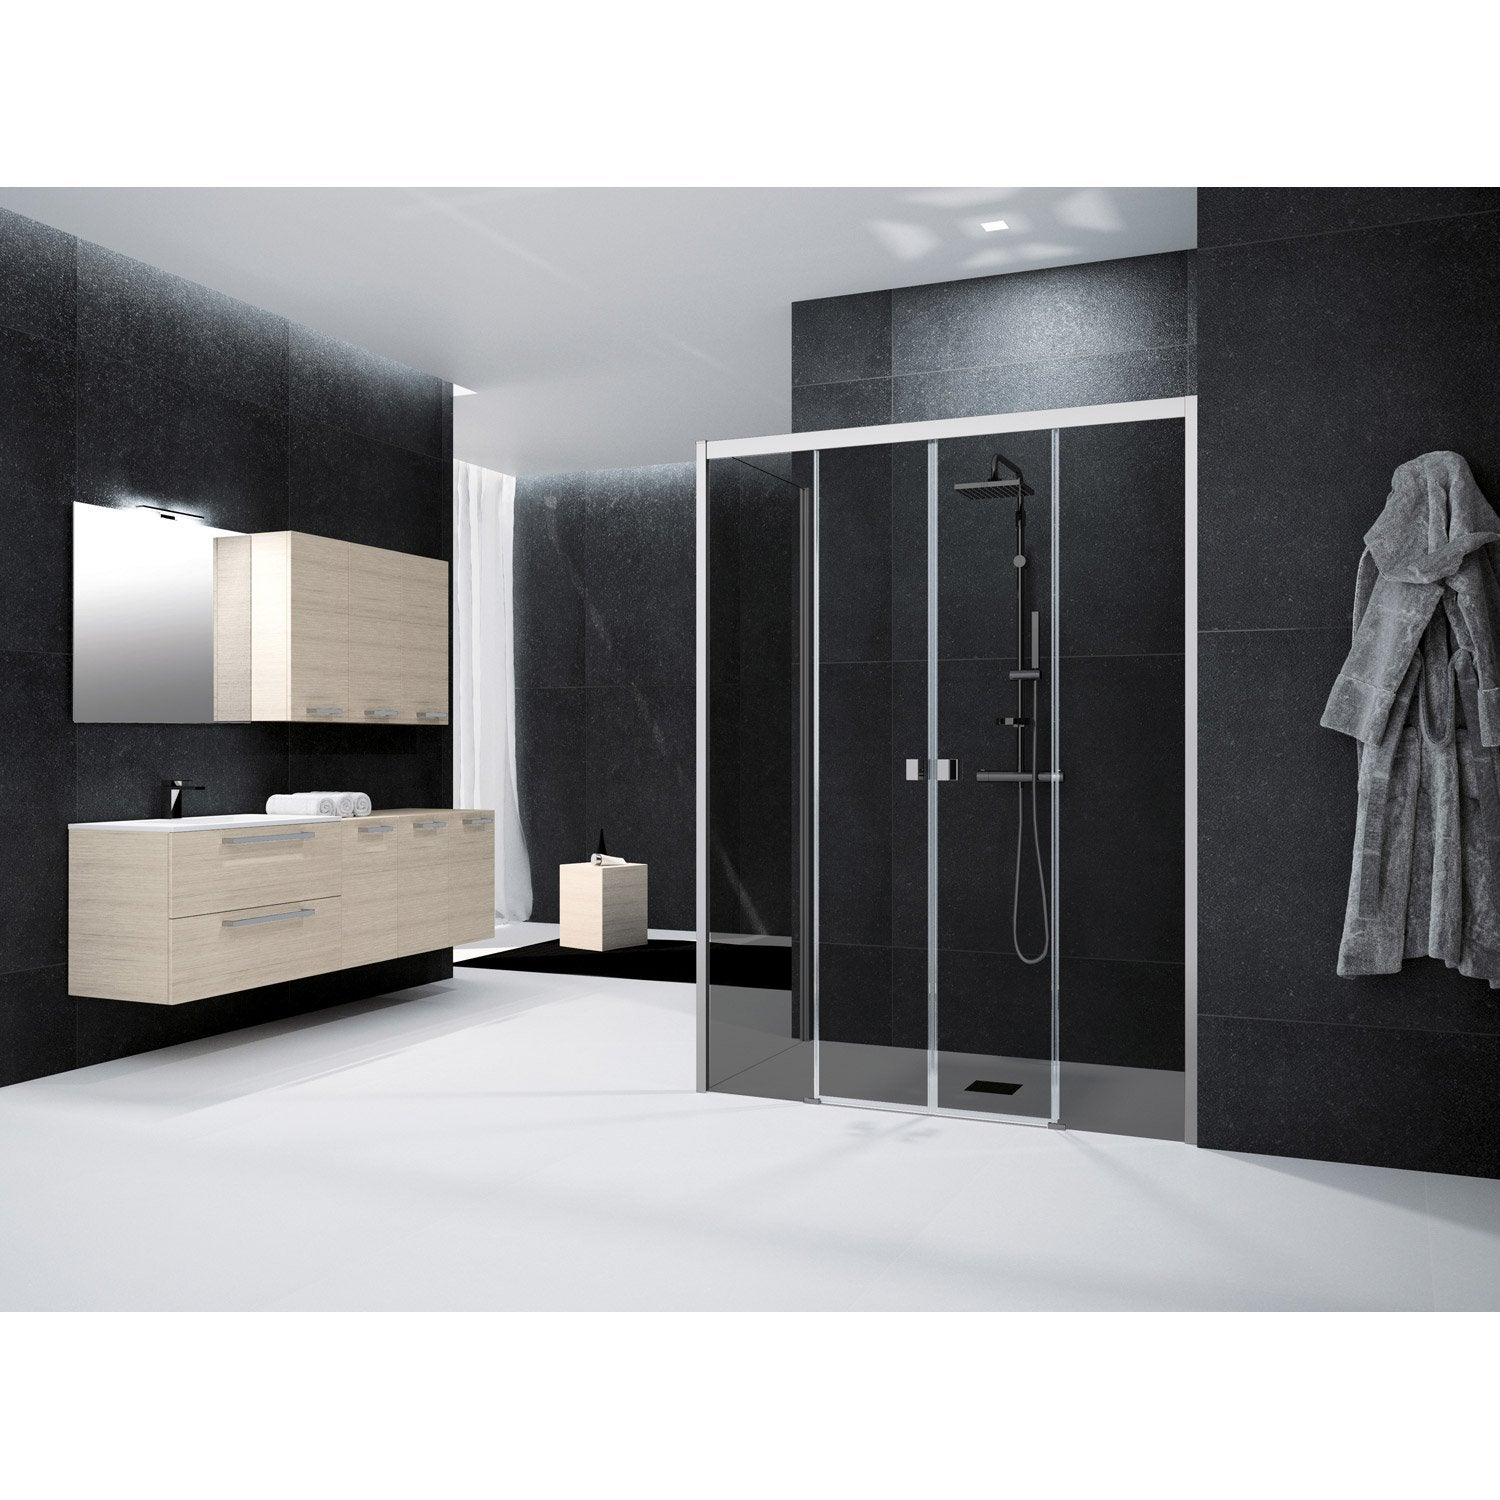 porte de douche coulissante 150 cm fum neo leroy merlin. Black Bedroom Furniture Sets. Home Design Ideas